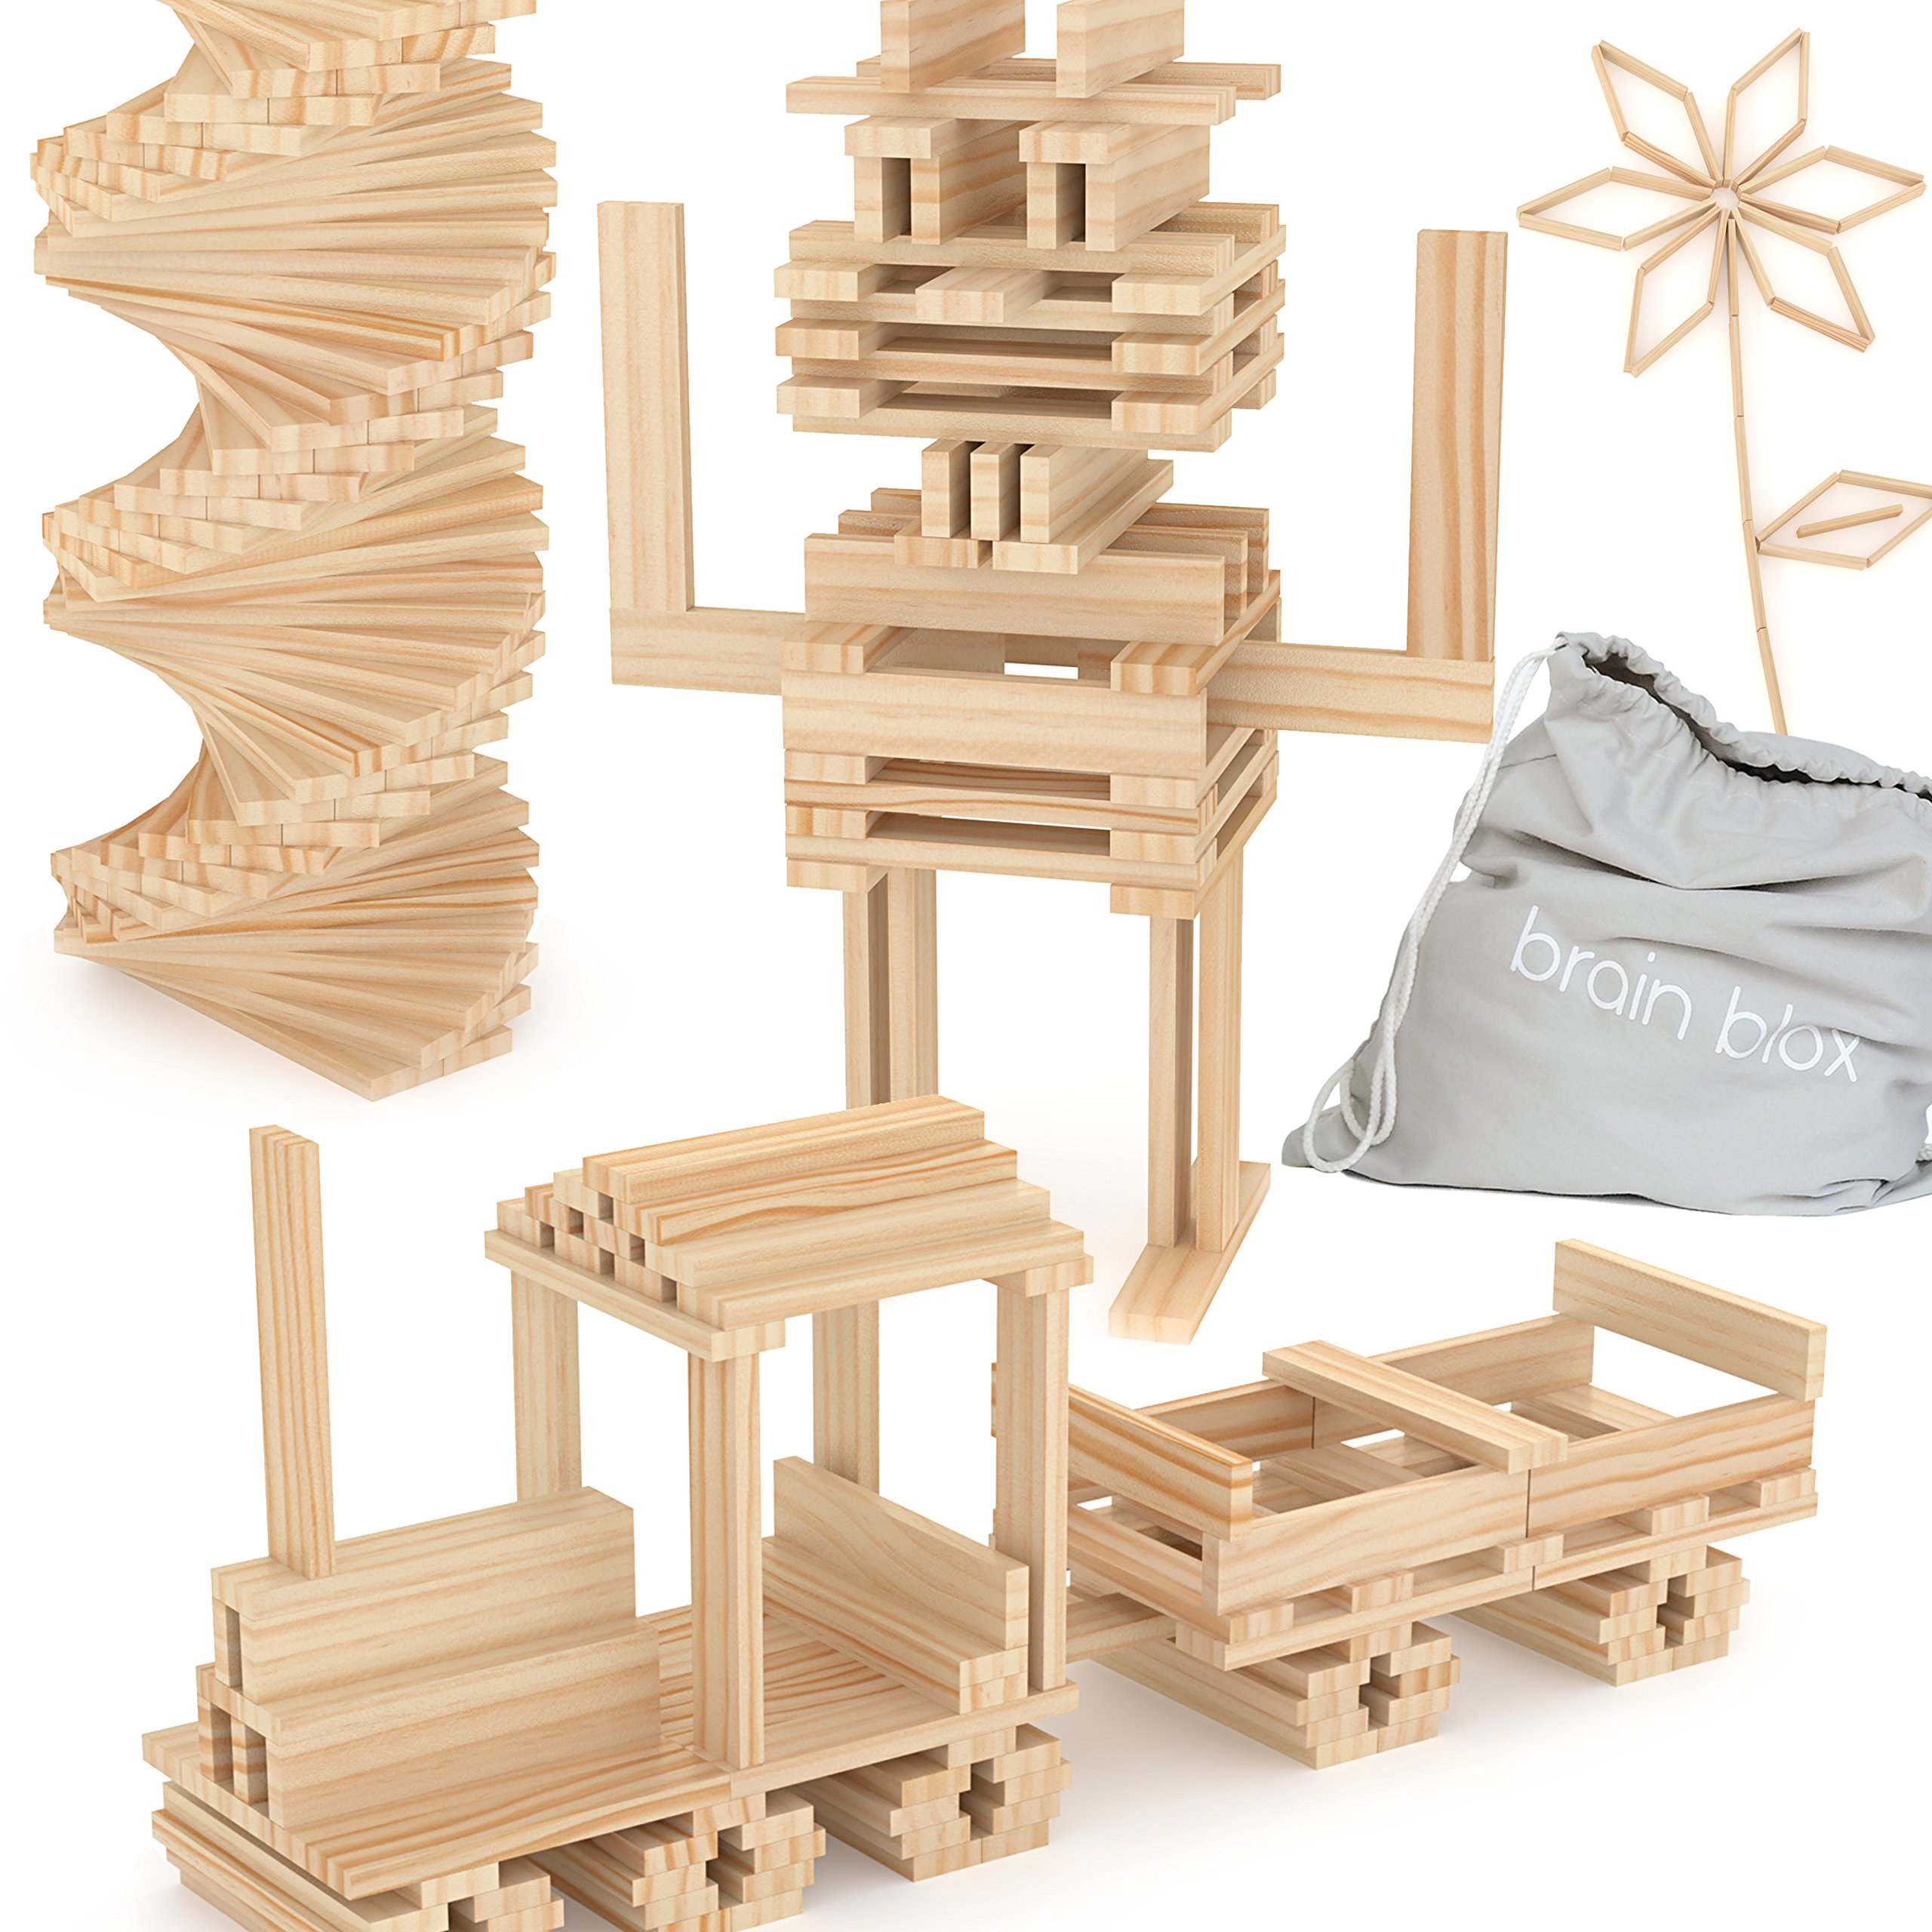 Brain Blox Wooden Building Blocks for Kids - Building Planks Set, STEM Toy for Boys and Girls (100 Pieces)